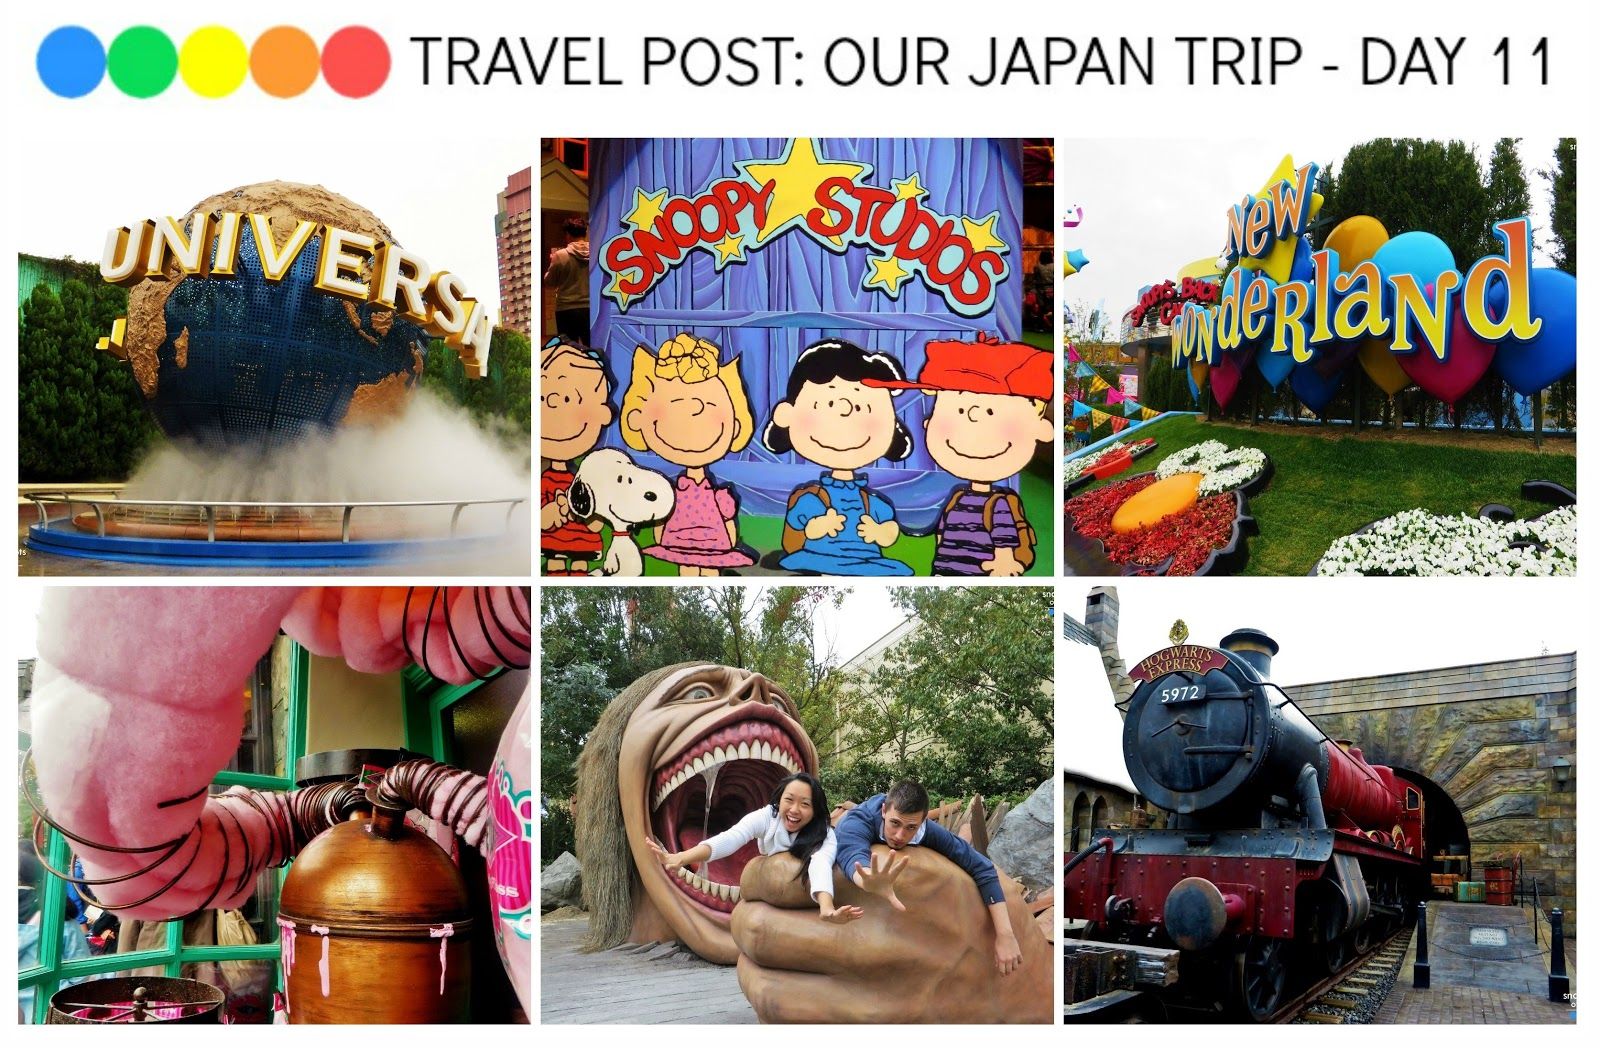 Universal Studios Osaka - Jurrasic Park Ride, Harry Potter attraction, Attack on Titan, Despicable Me, Happiness Cafe, New Wonderland, Hello Kitty, Spiderman and POMME NO KI RESTAURANT